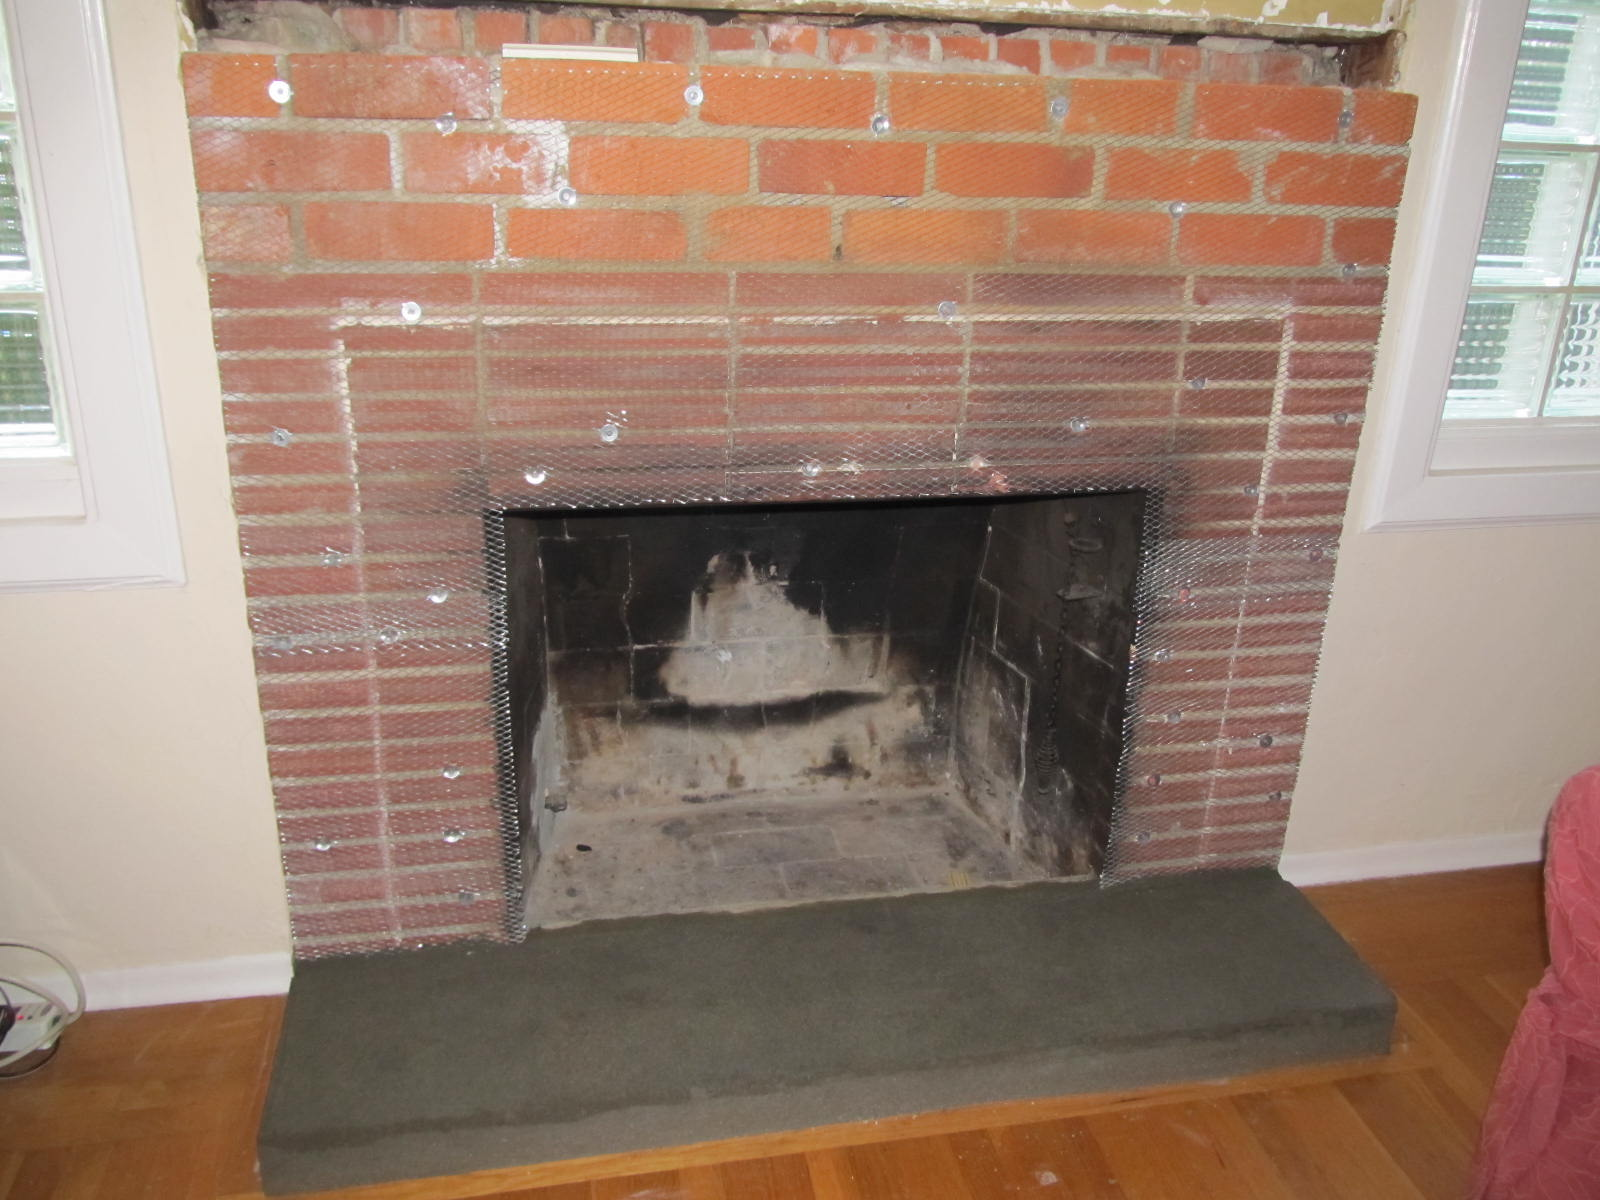 How to build a brick fireplace surround fireplace design ideas - Brick fireplace surrounds ideas ...